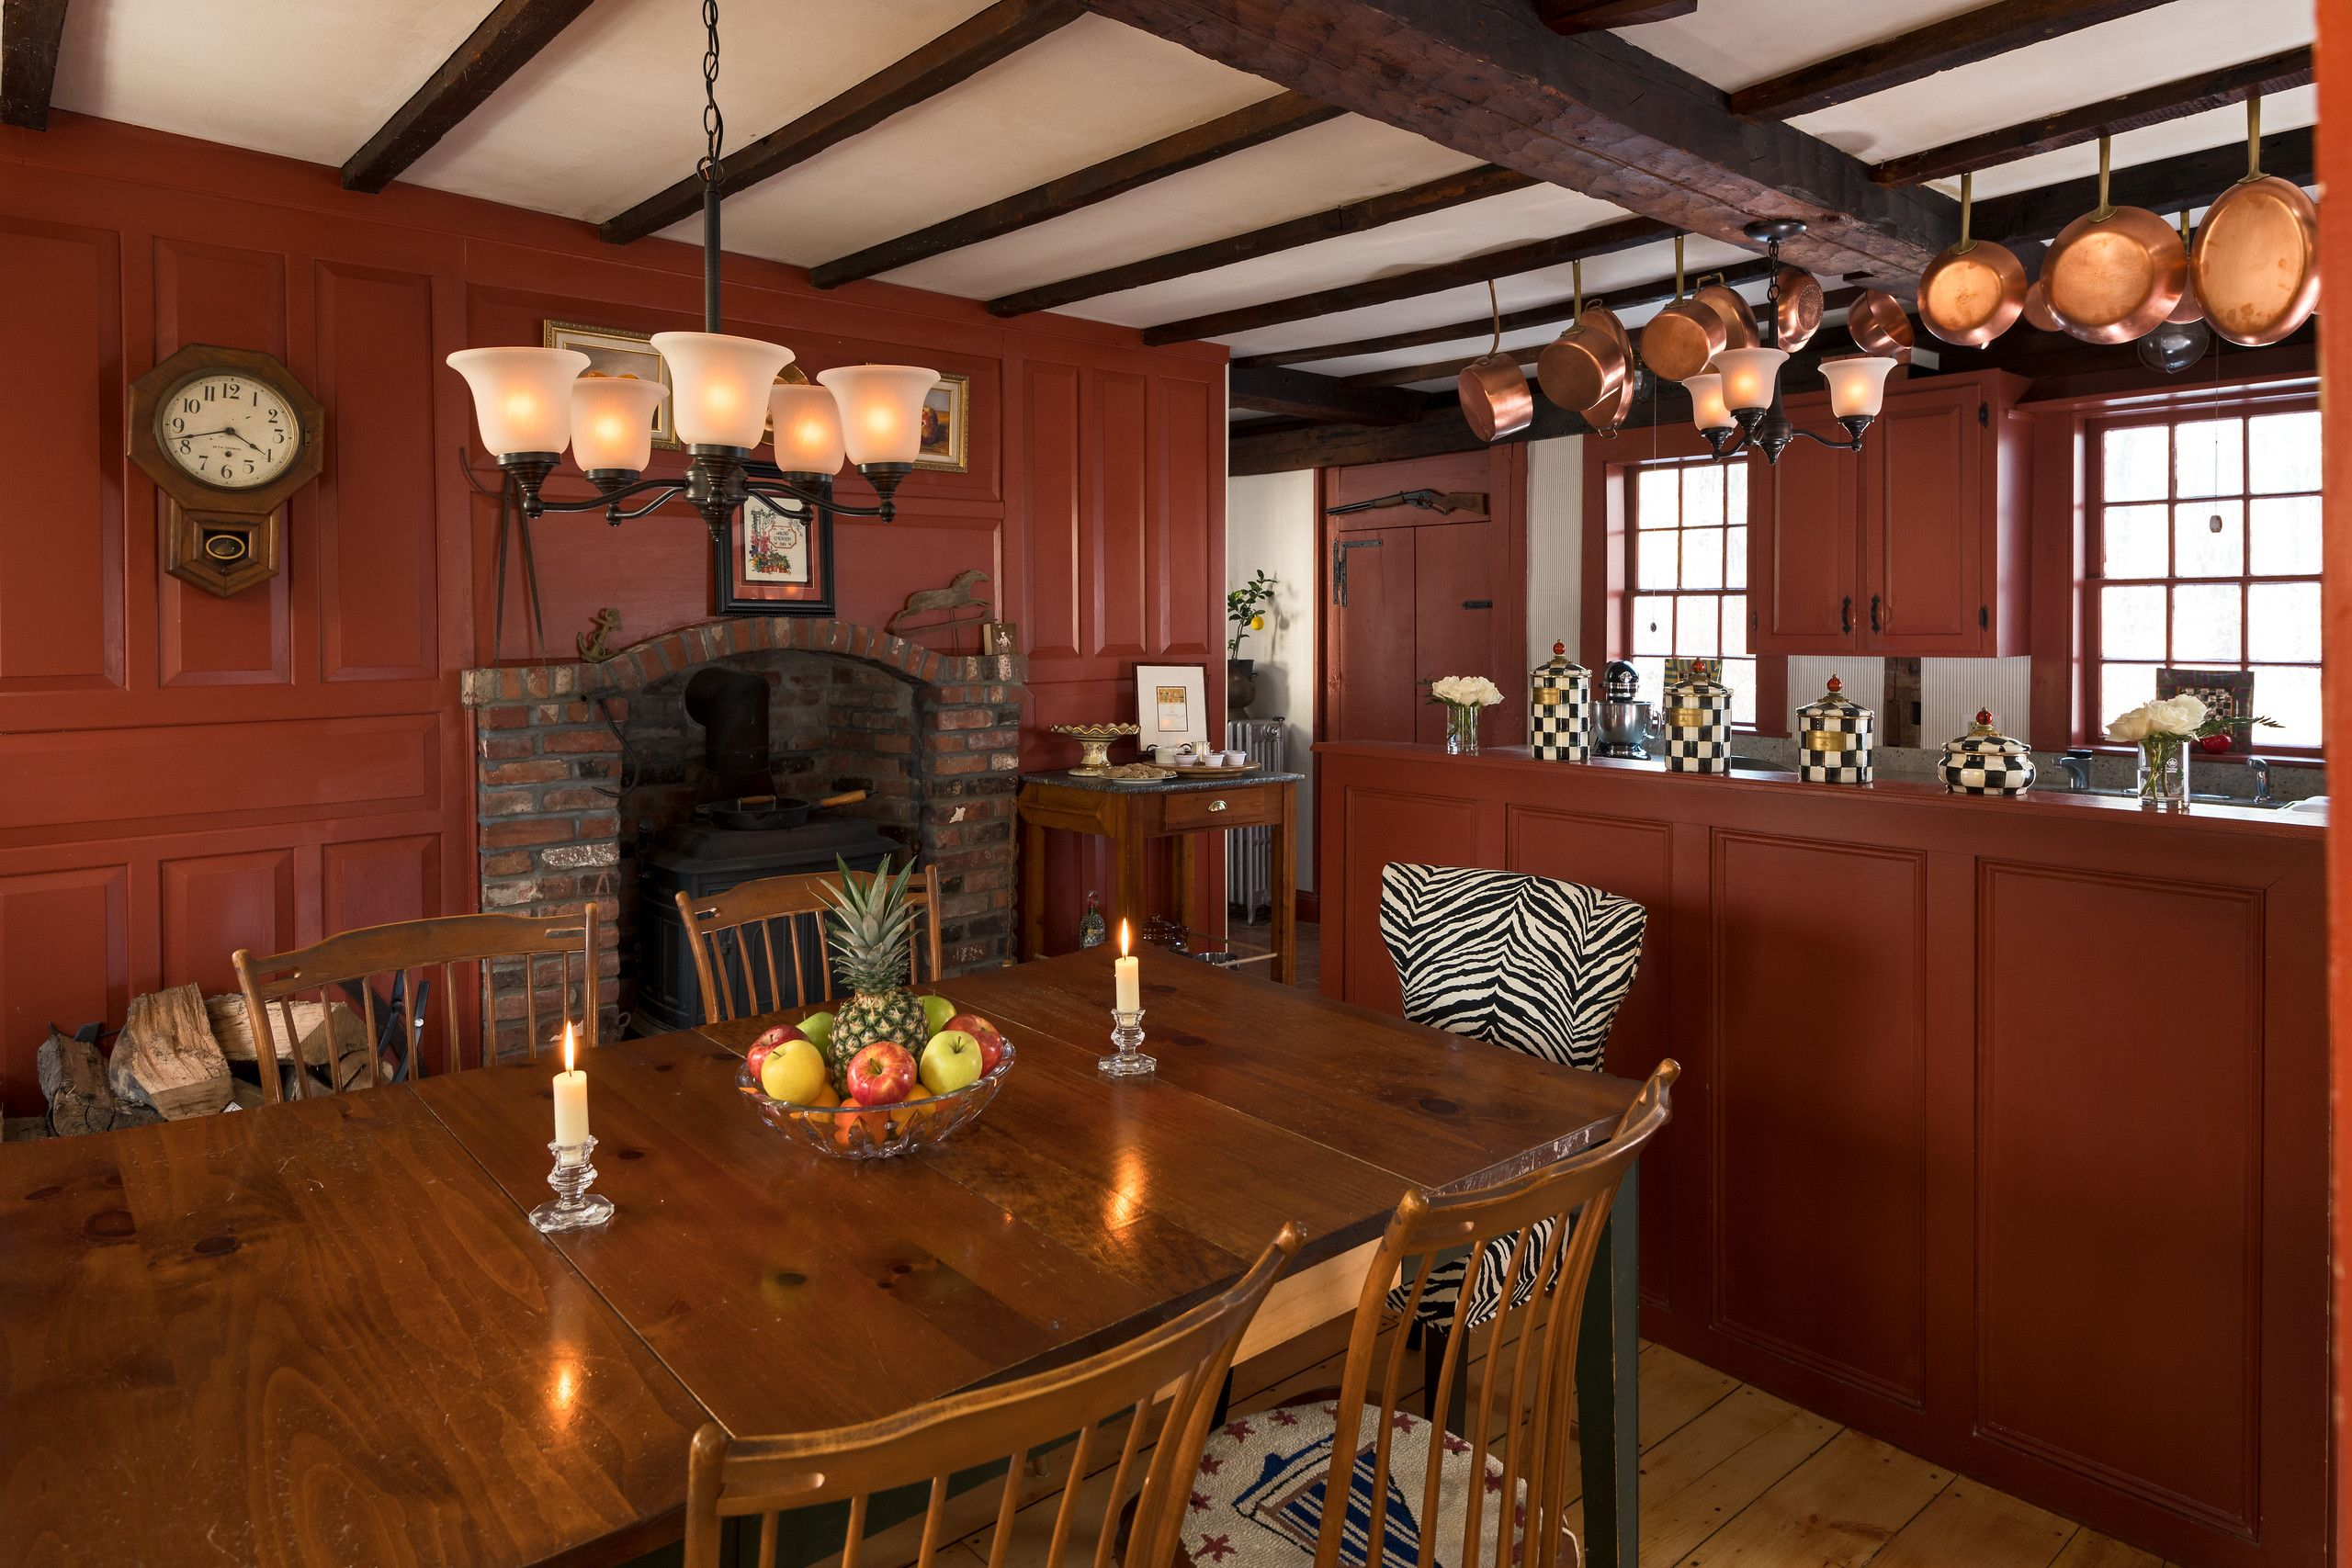 Kitchen Maine bed and breakfast, Romantic room, Bed and